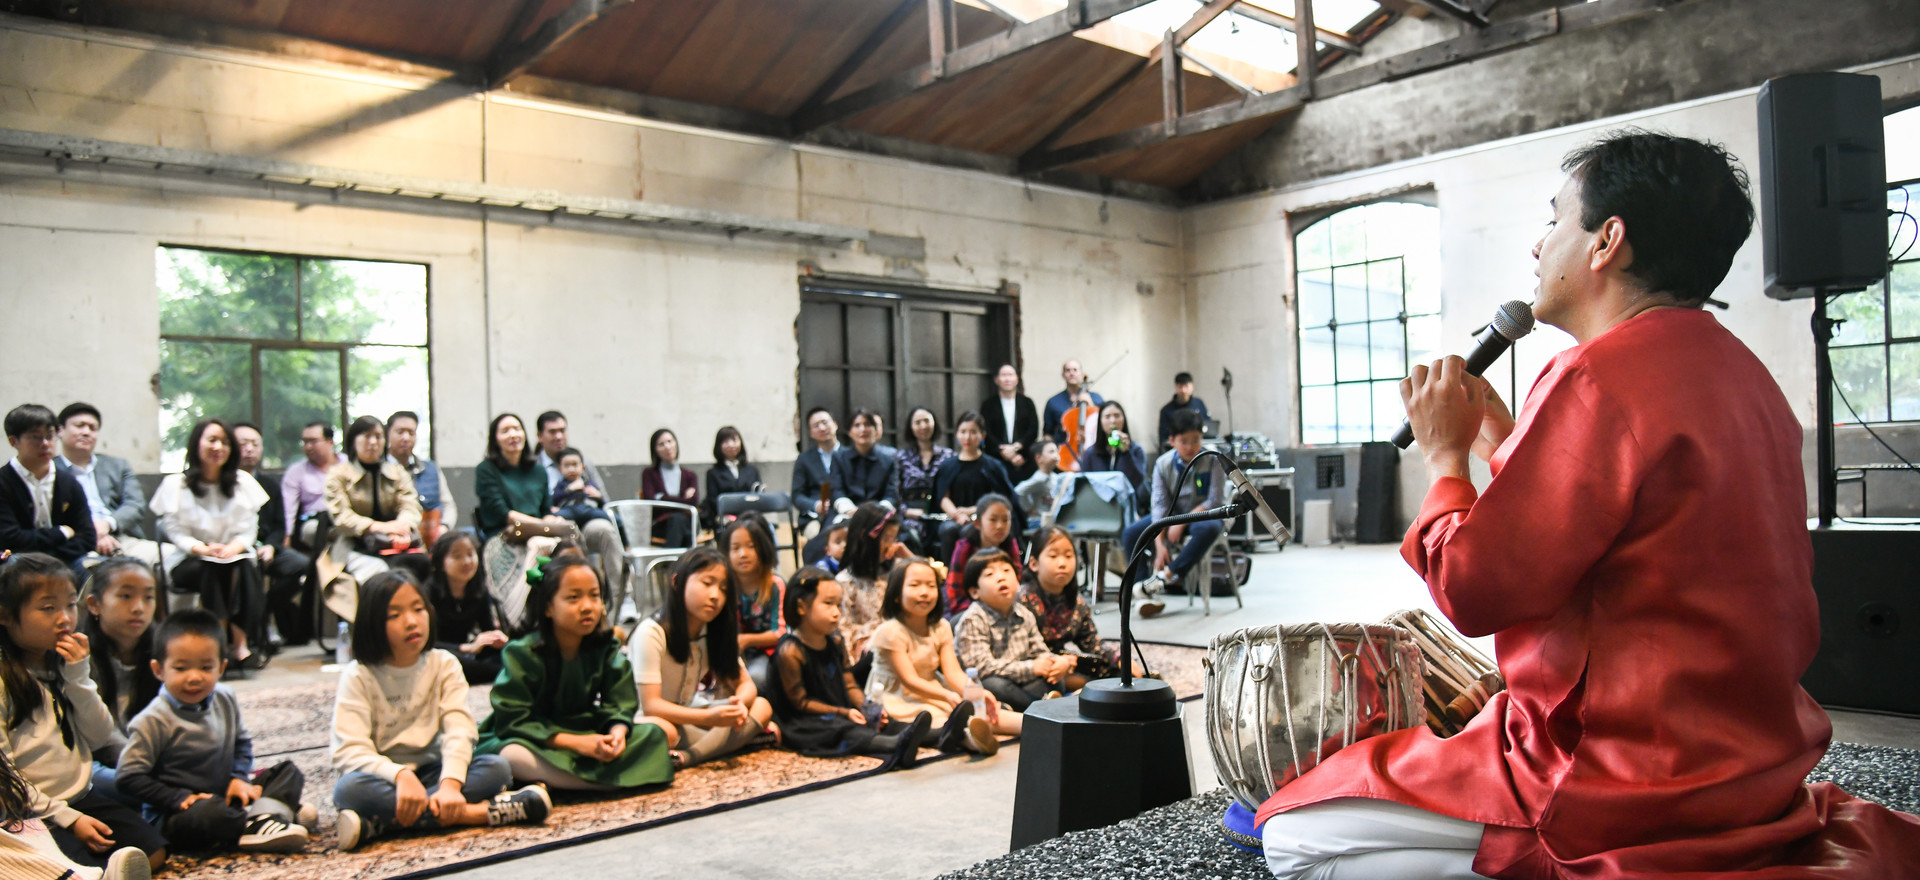 Interacting with Children at a Private Event in Korea (Oct. 2018)